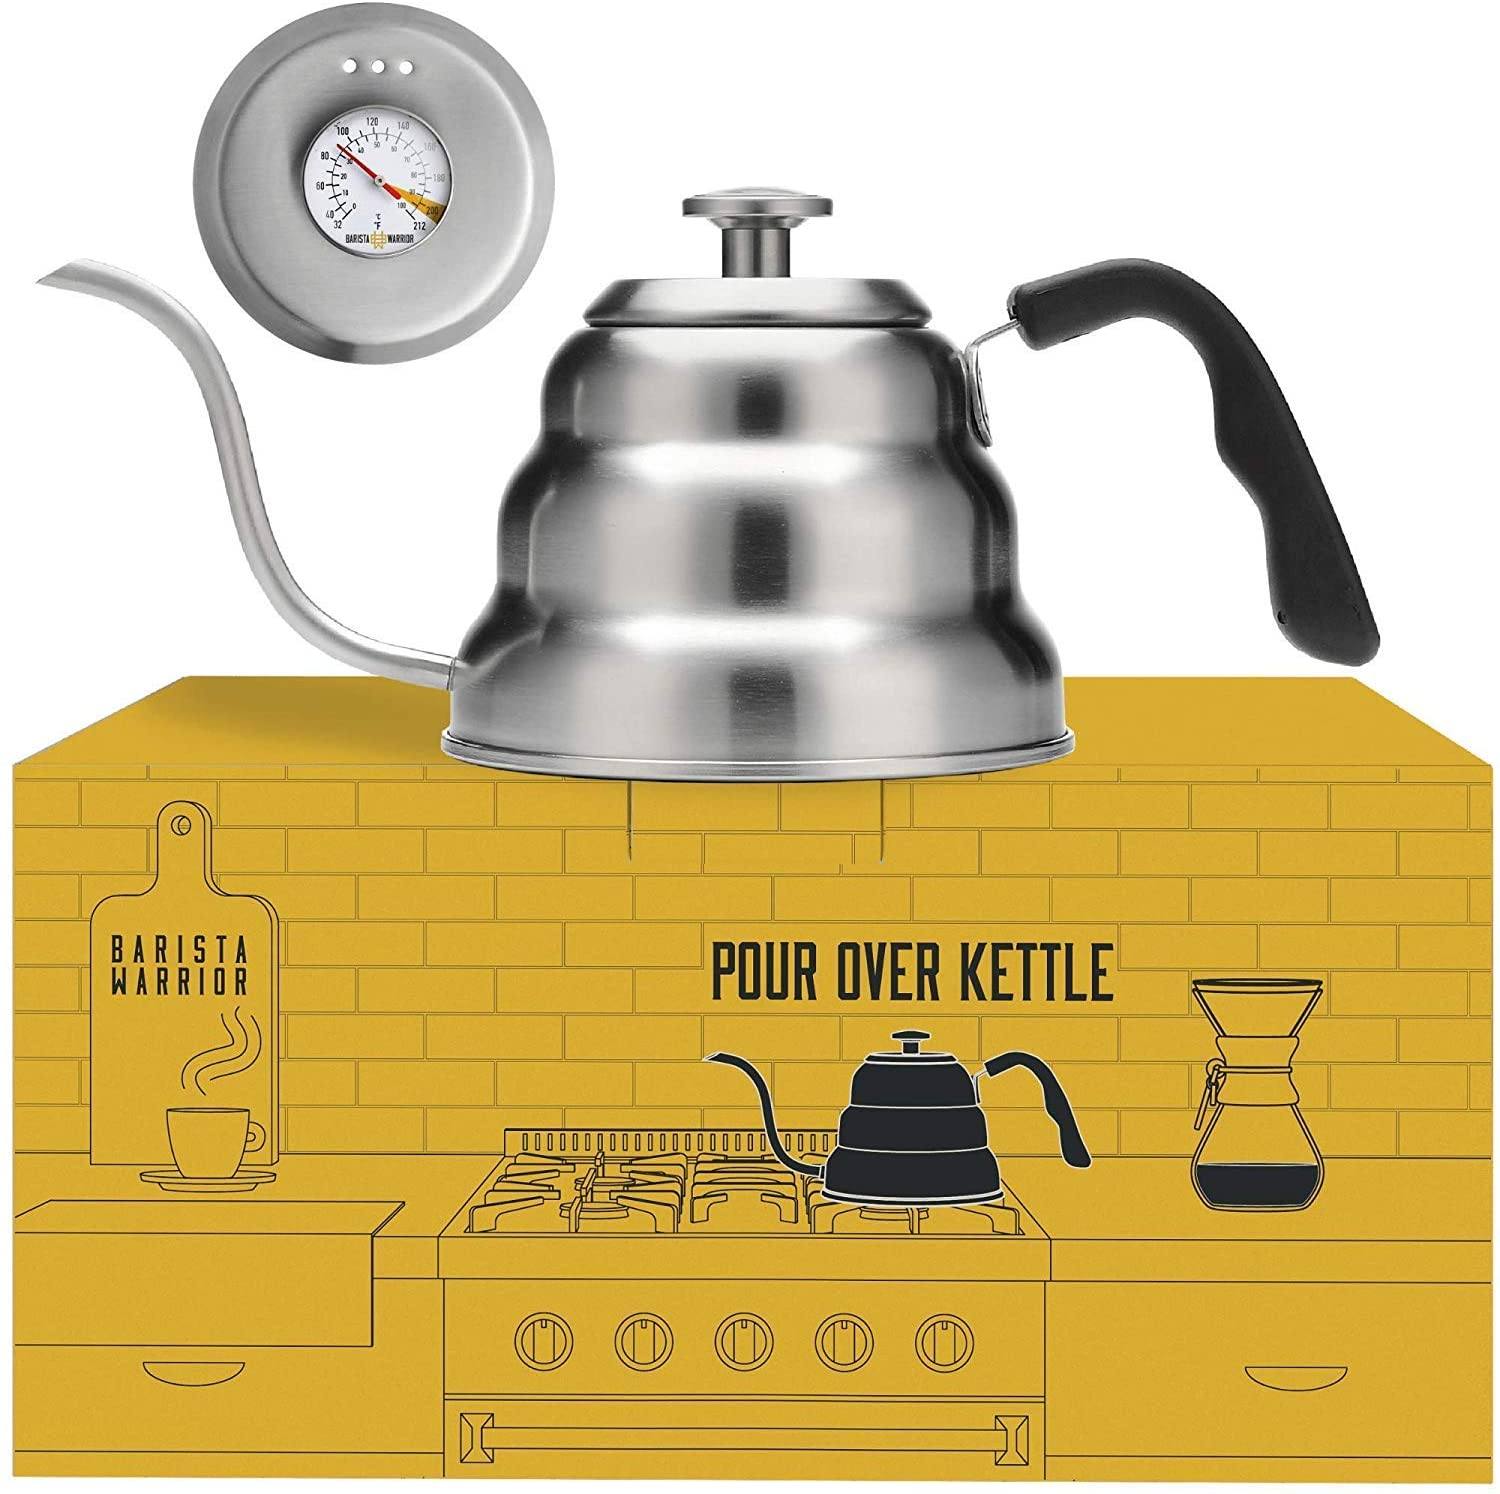 Pour Over Coffee Kettle with Thermometer for Exact Temperature